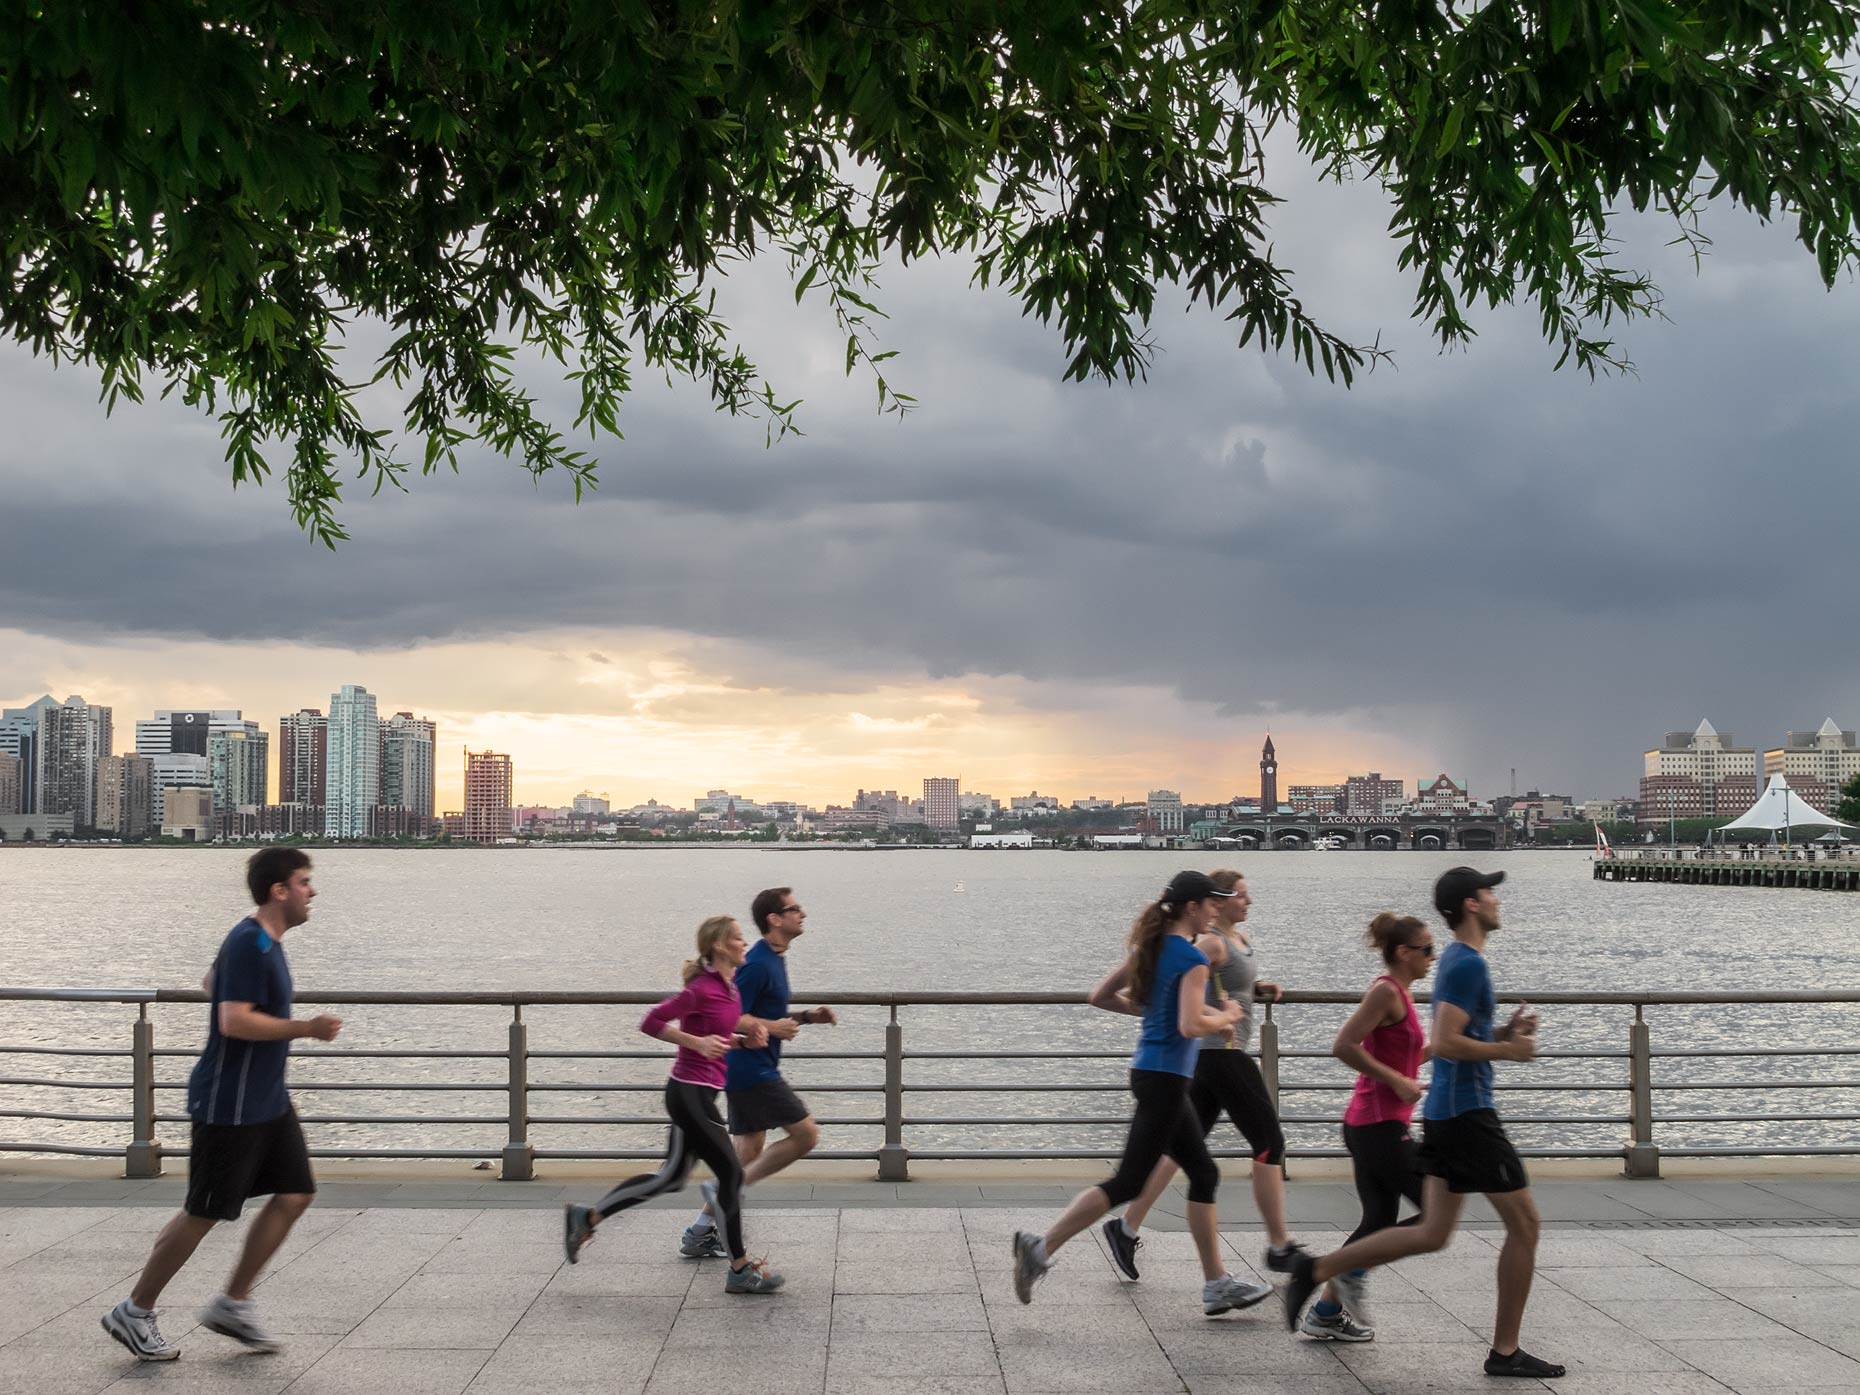 Runners, Hudson River Park, New York, New York